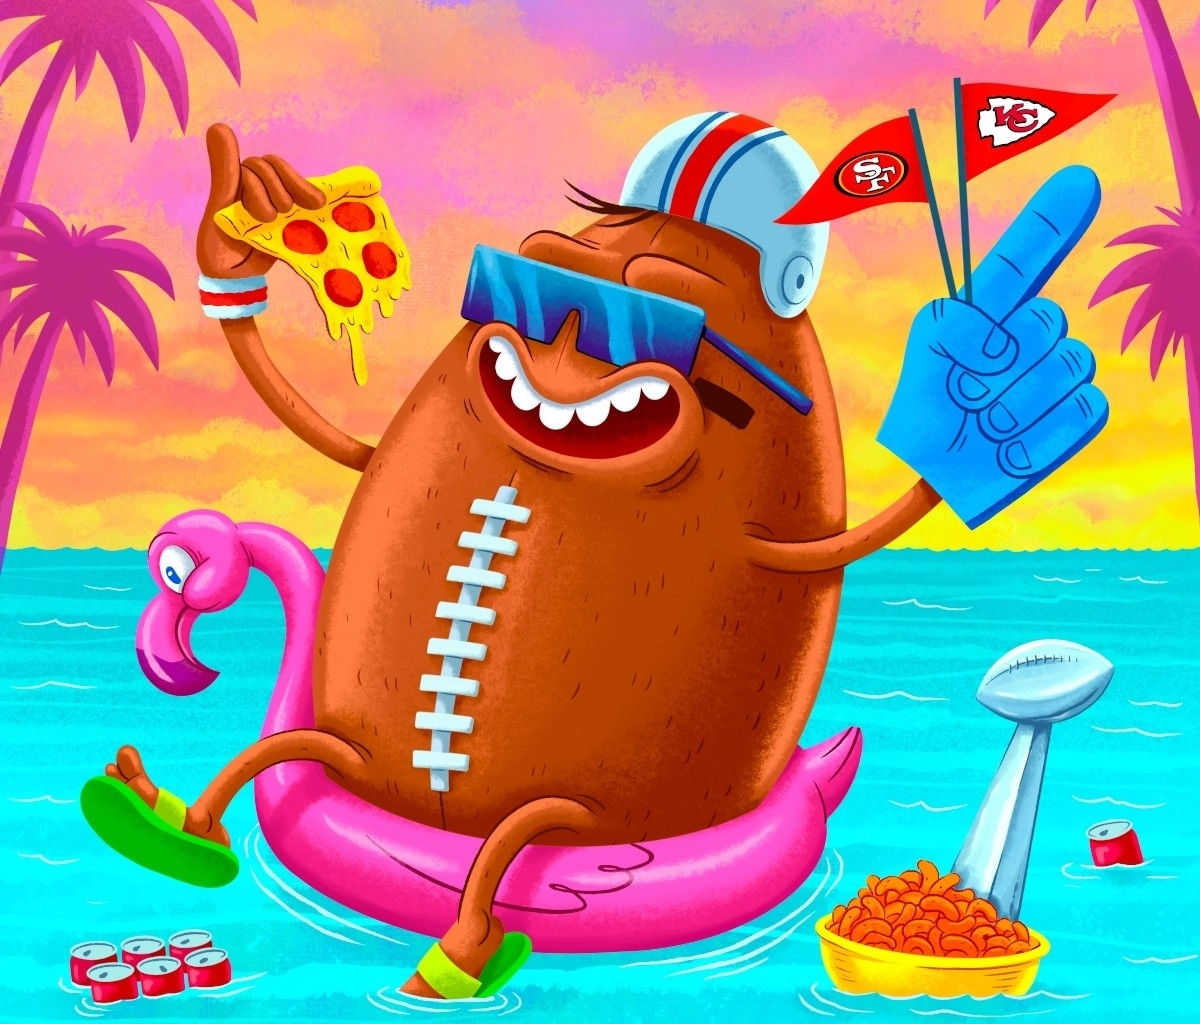 Miami Should Host The Super Bowl Every Year | Miami New Times within Super Bowl At Miami